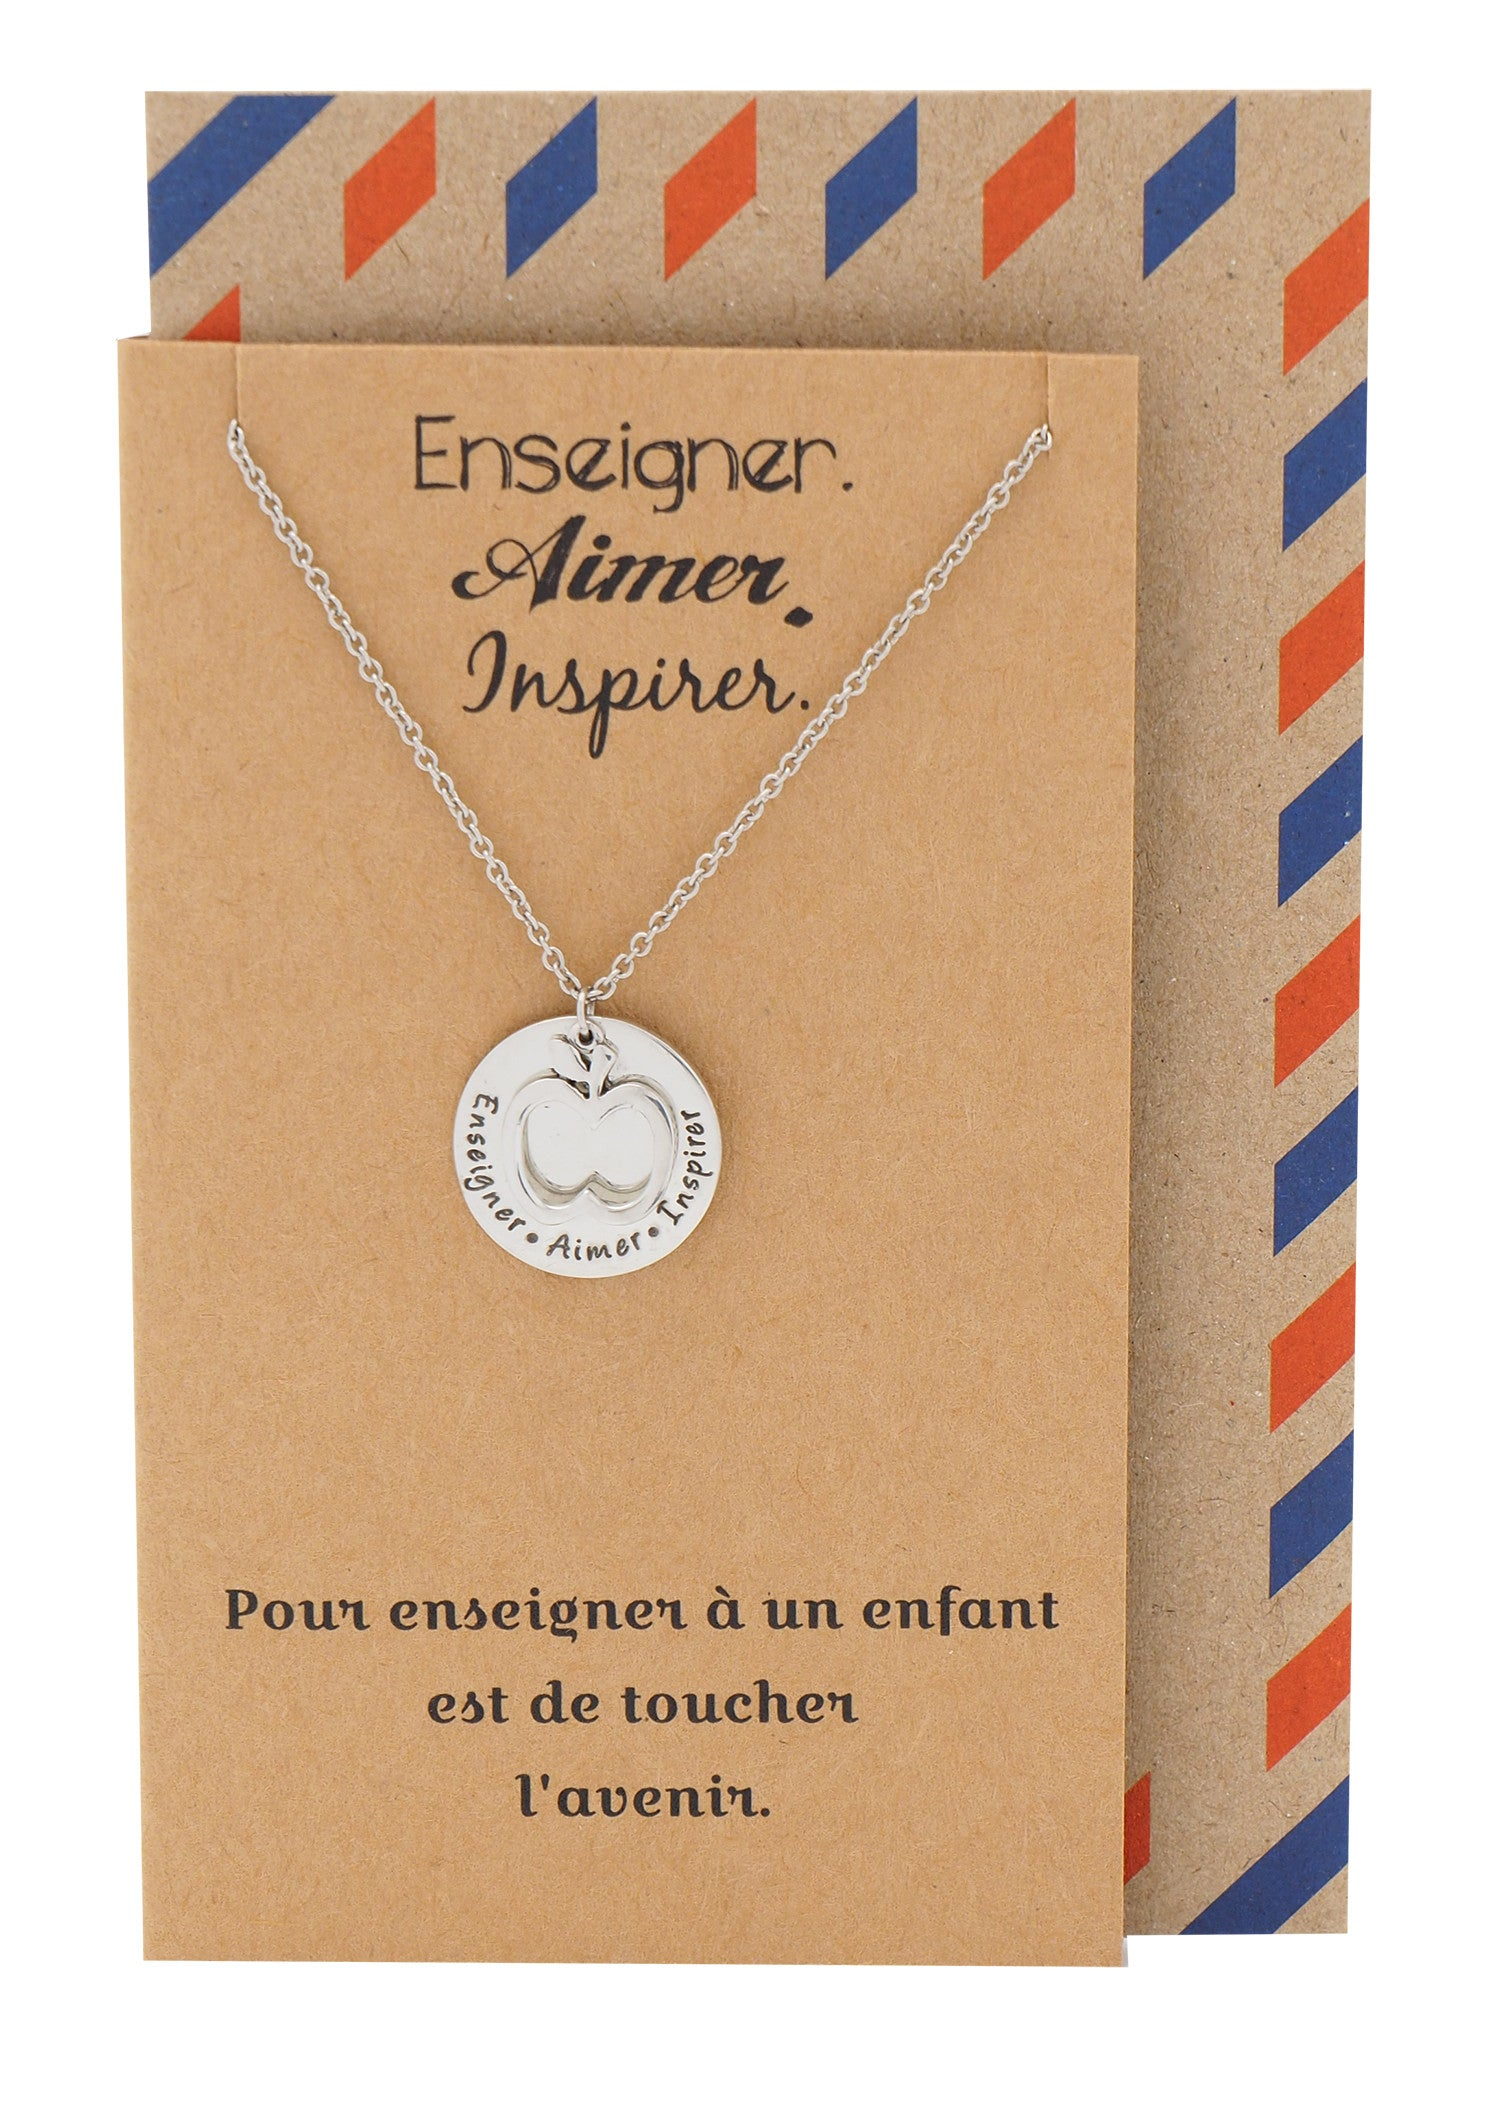 Alessandra Gifts for Teachers - Enseigner. Aimer. Inspirer. Necklace and Greeting Card - Quan Jewelry